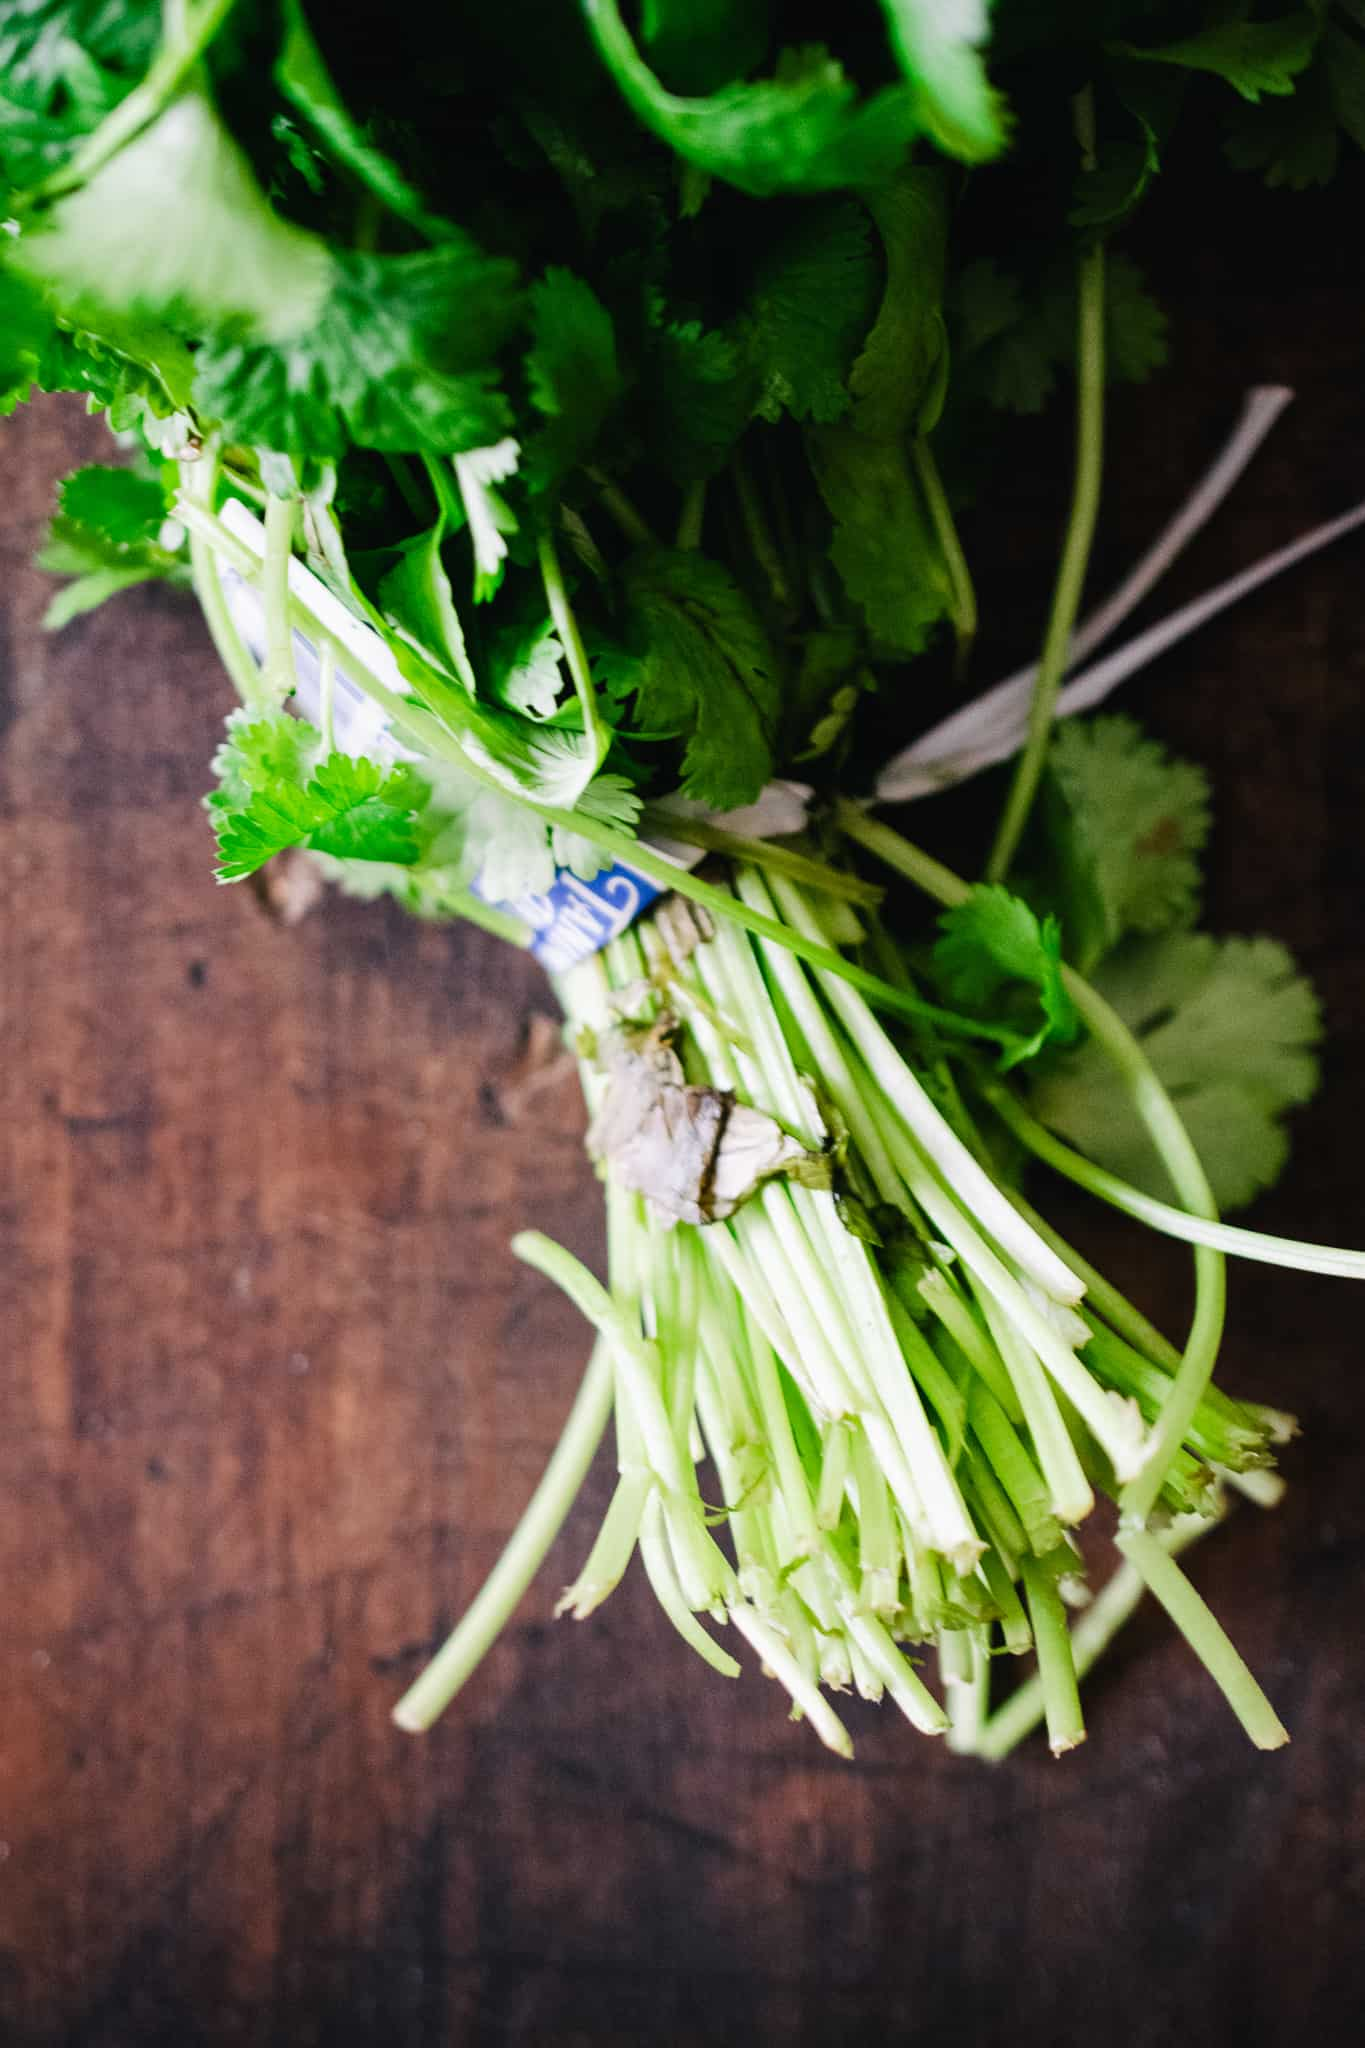 cilantro bunch with twist tie on wooden surface